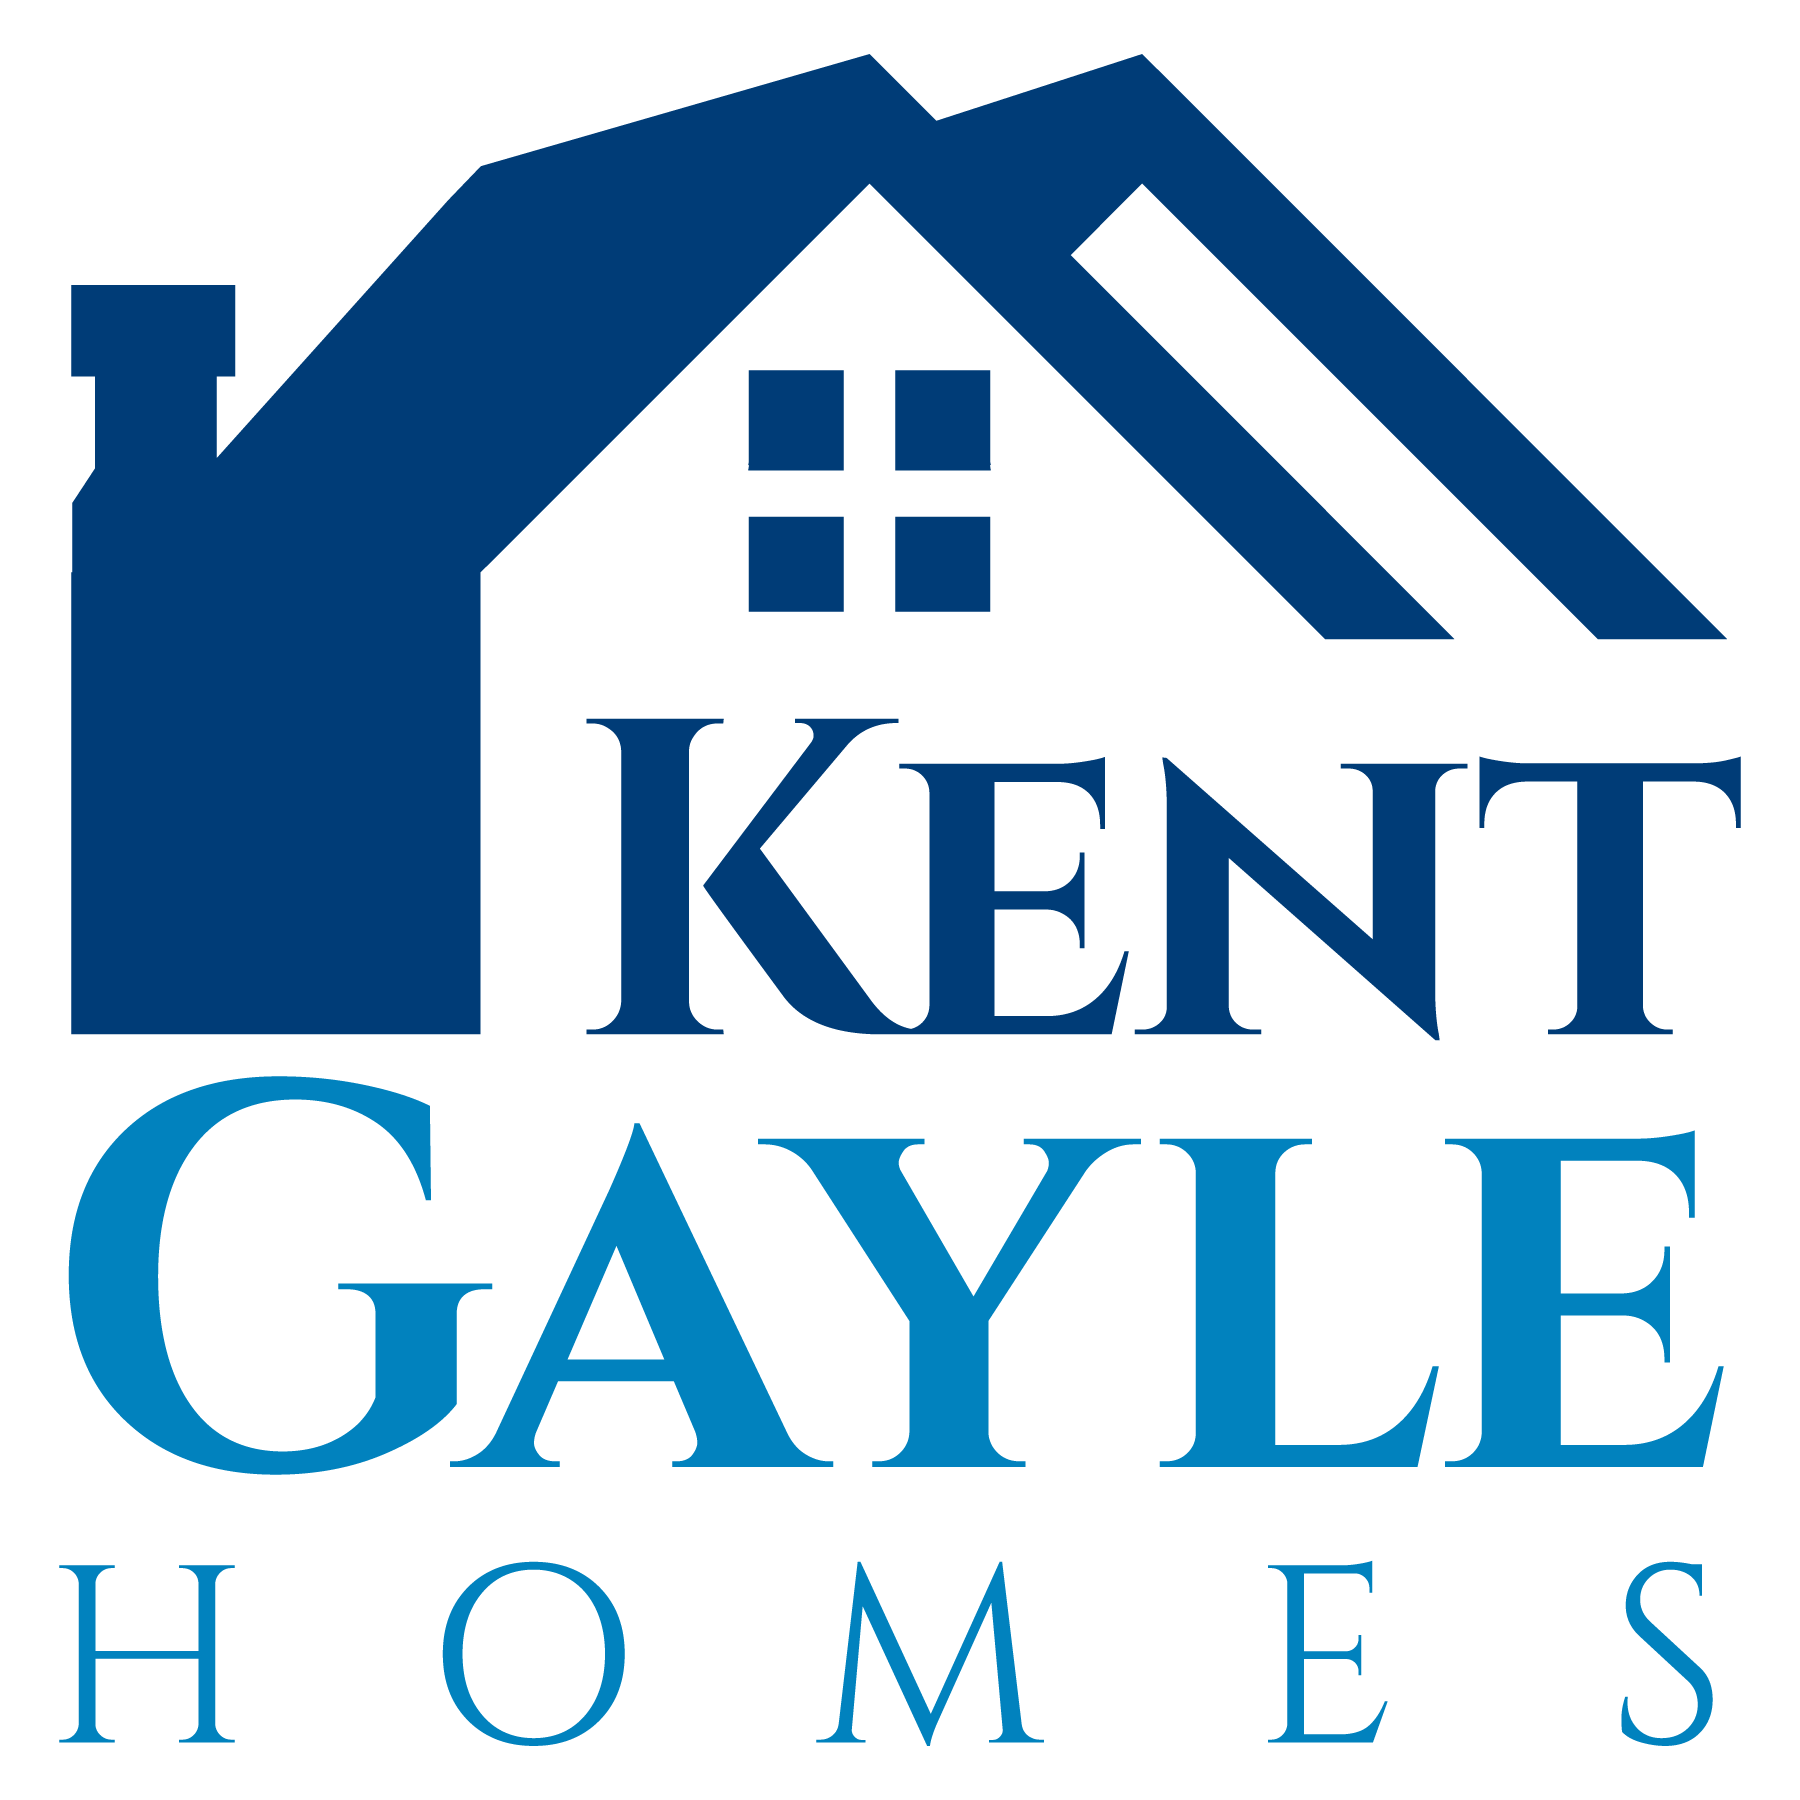 Kent Gayle Homes